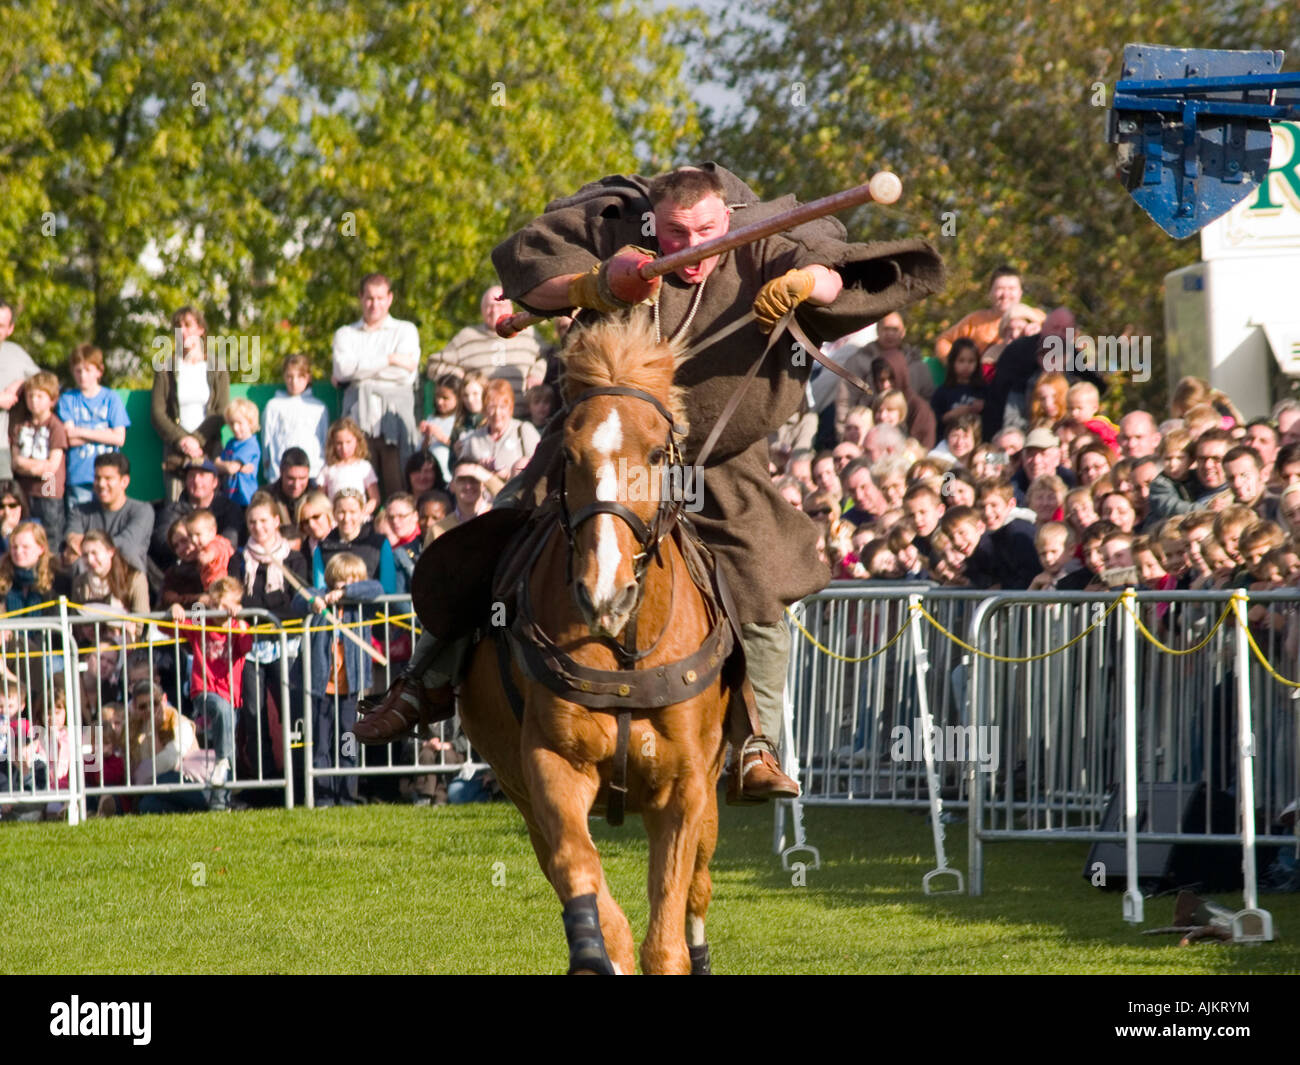 Friar Tuck jousting against the evil Sheriff of Nottingham during the Robin Hood Pageant at Nottingham Castle 2007 - Stock Image